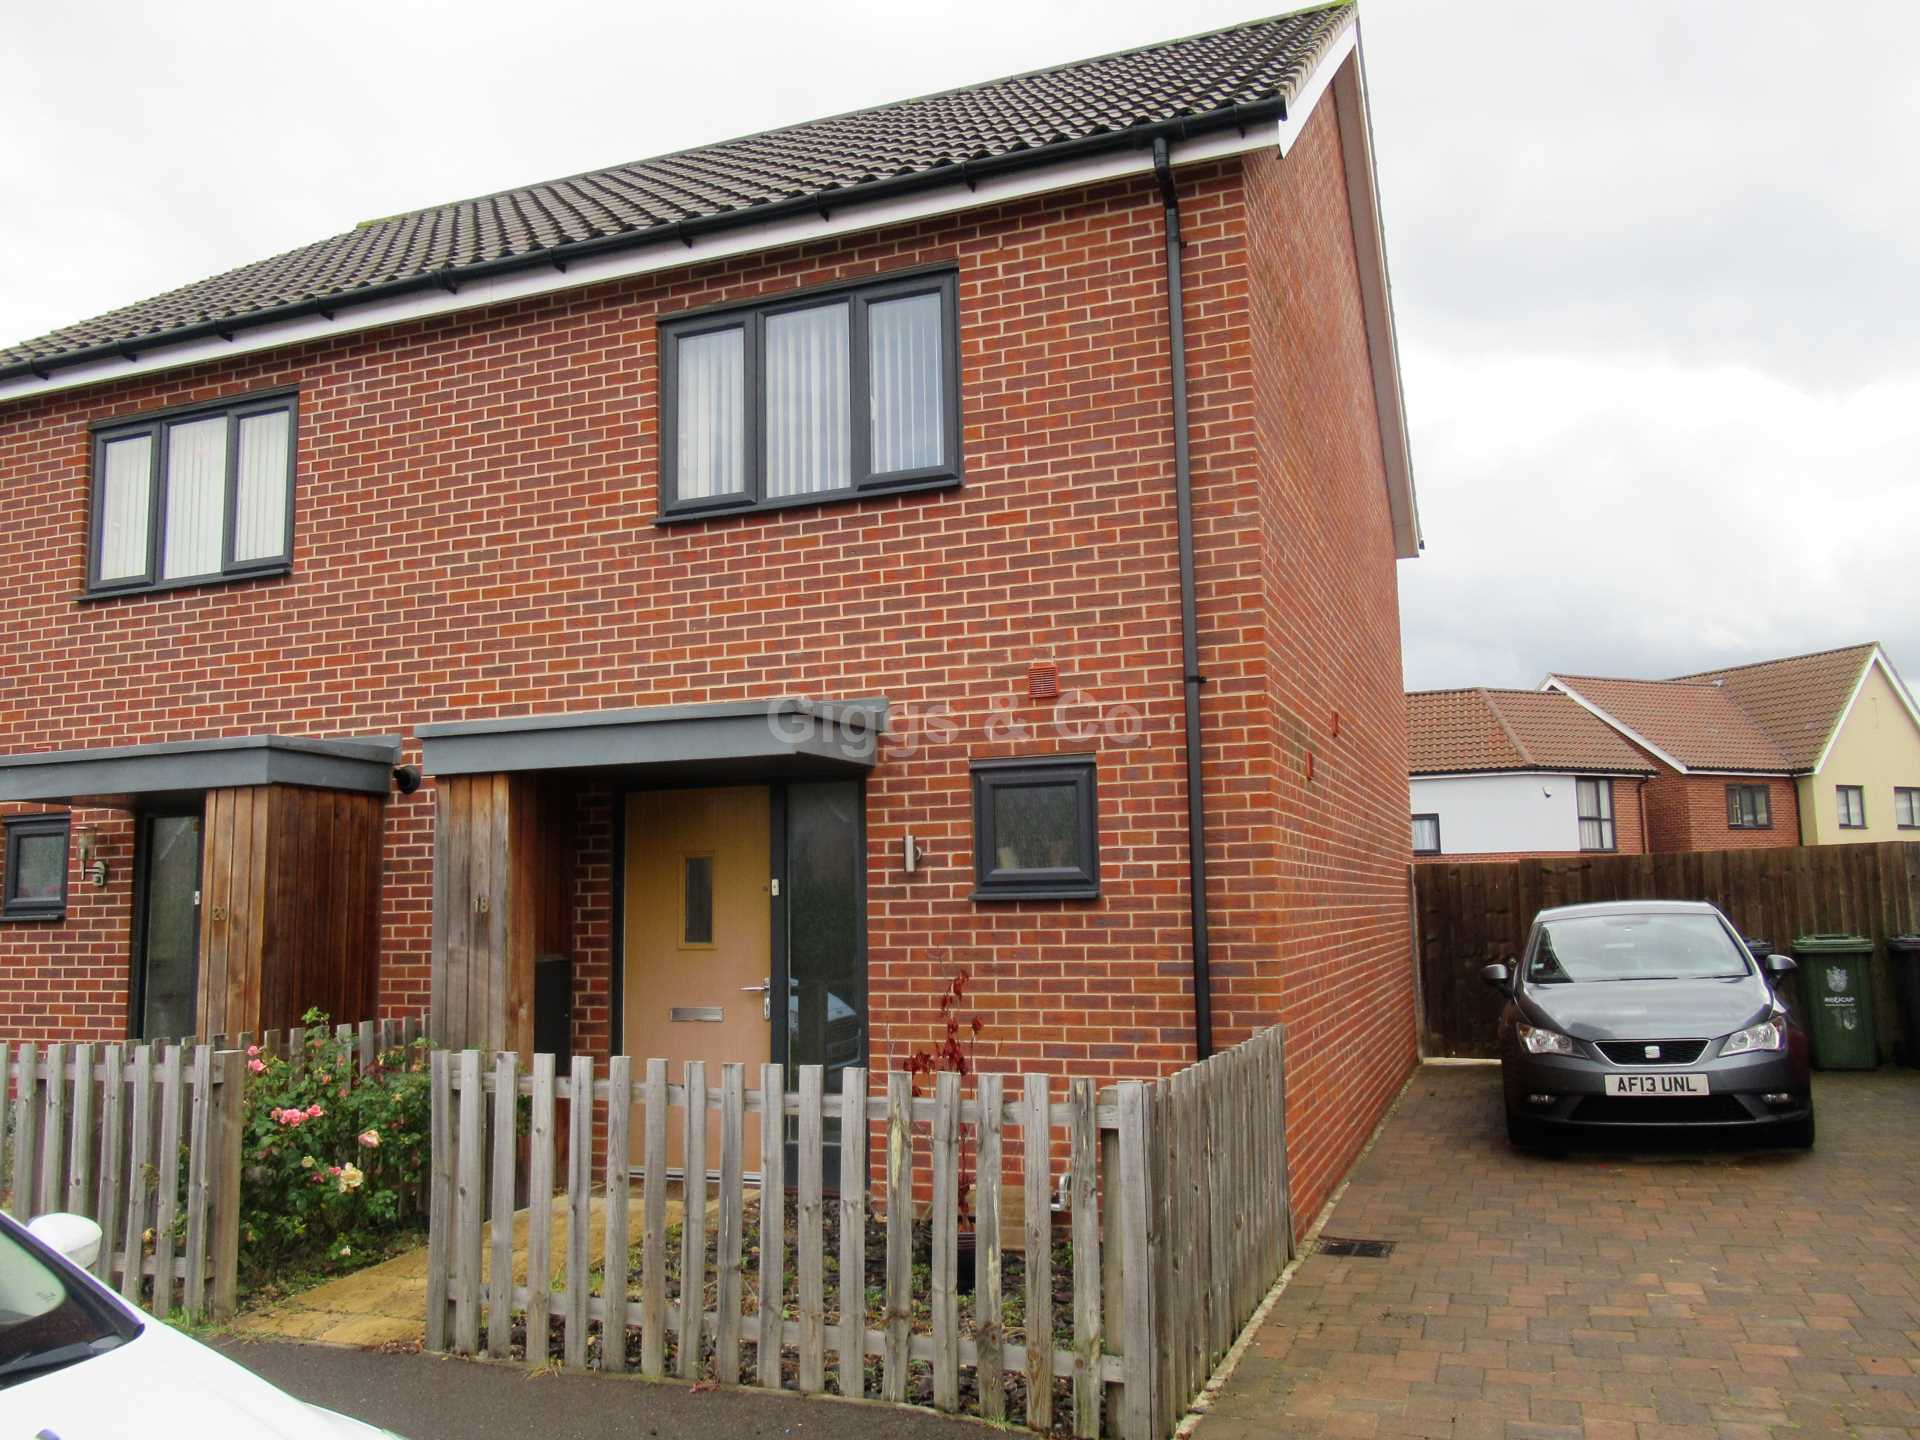 2 bed house to rent in Otter Road, Upper Cambourne, Cambridge, CB23